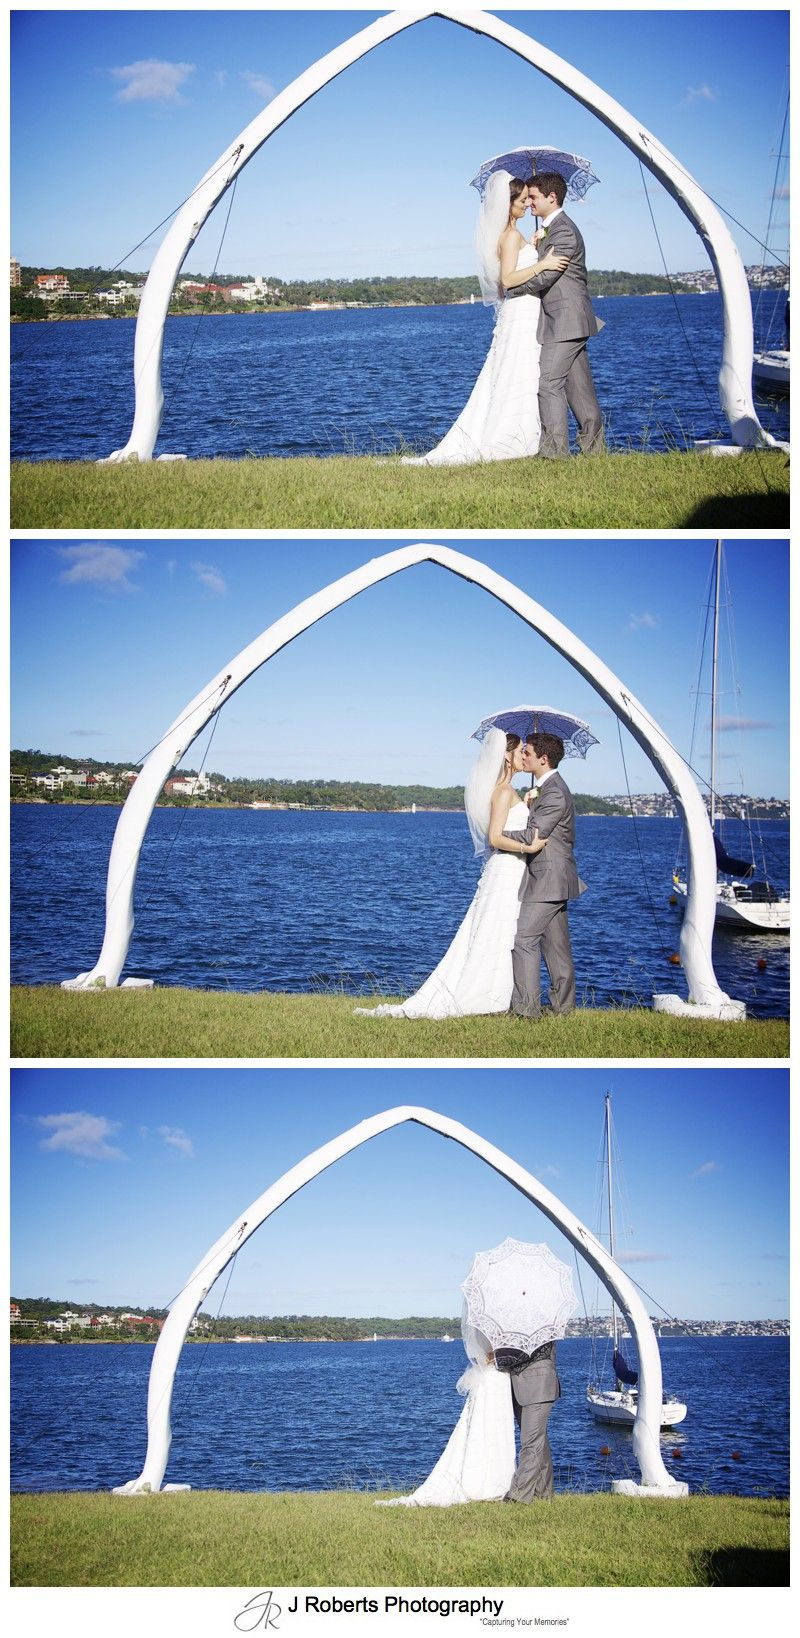 Bride and groom with parasol on Sydney Harbour - wedding photography sydney